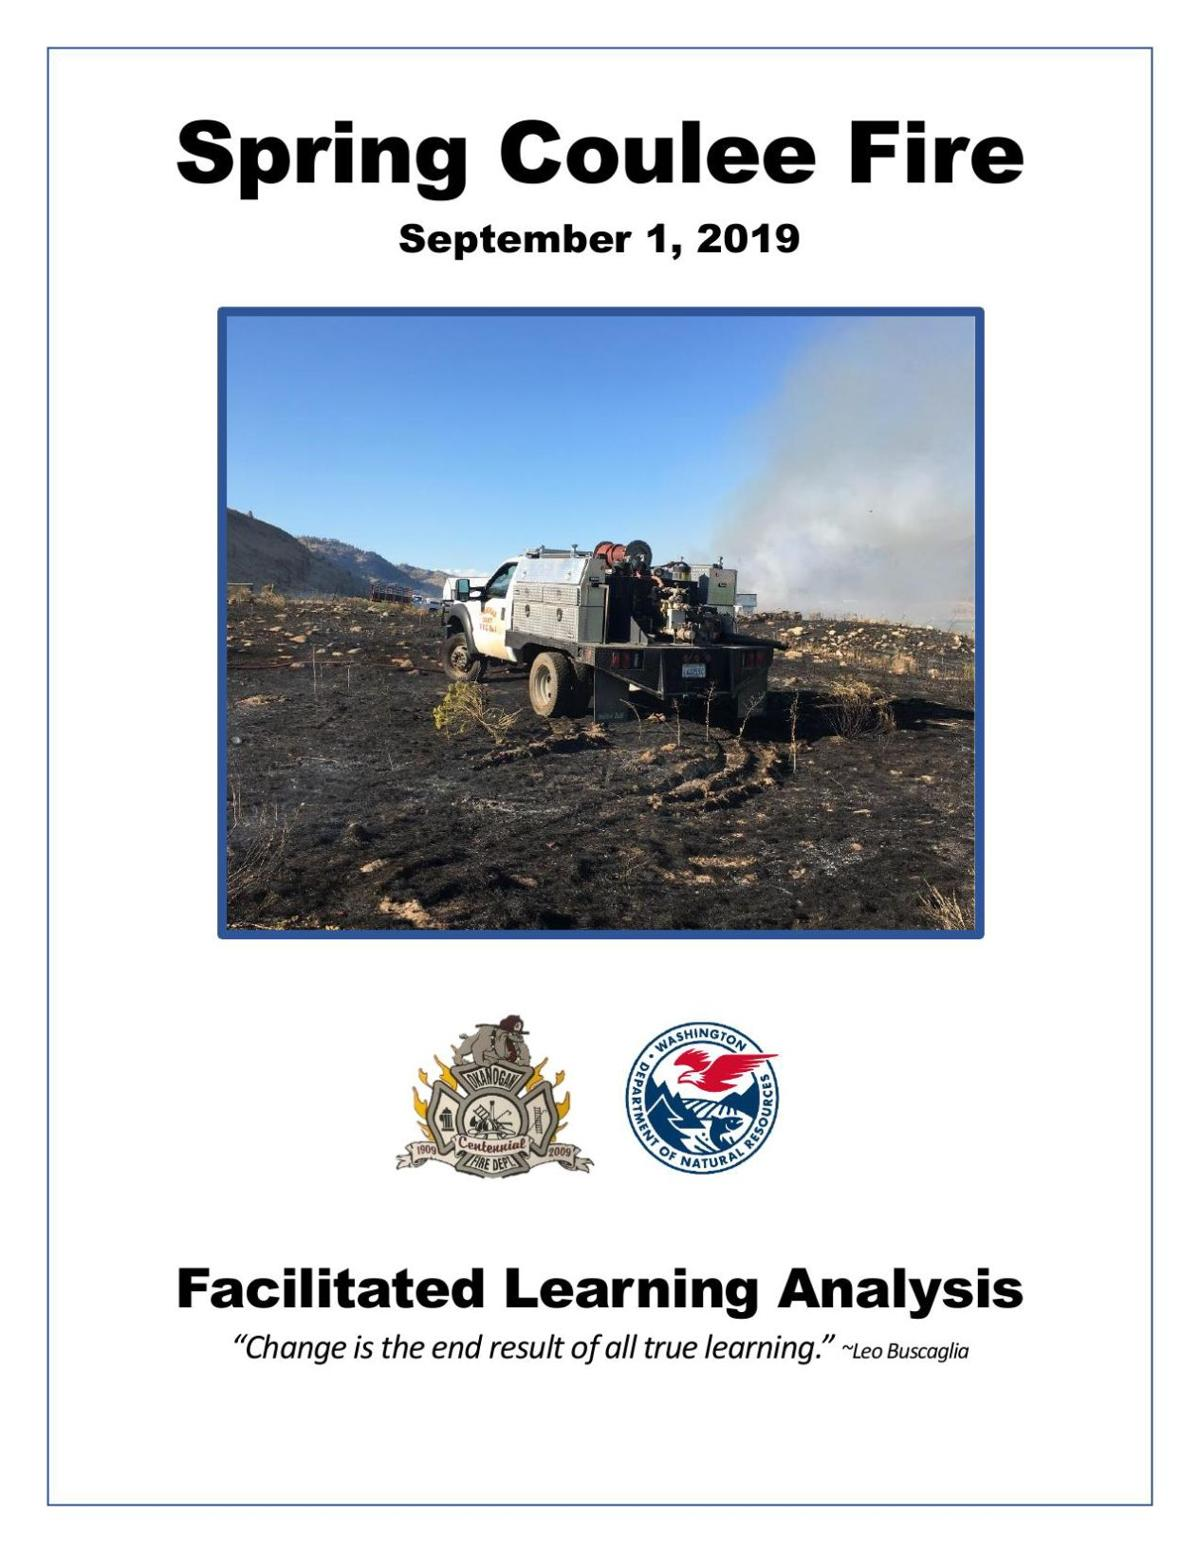 Spring Coulee Fire Facilitated Learning Analysis